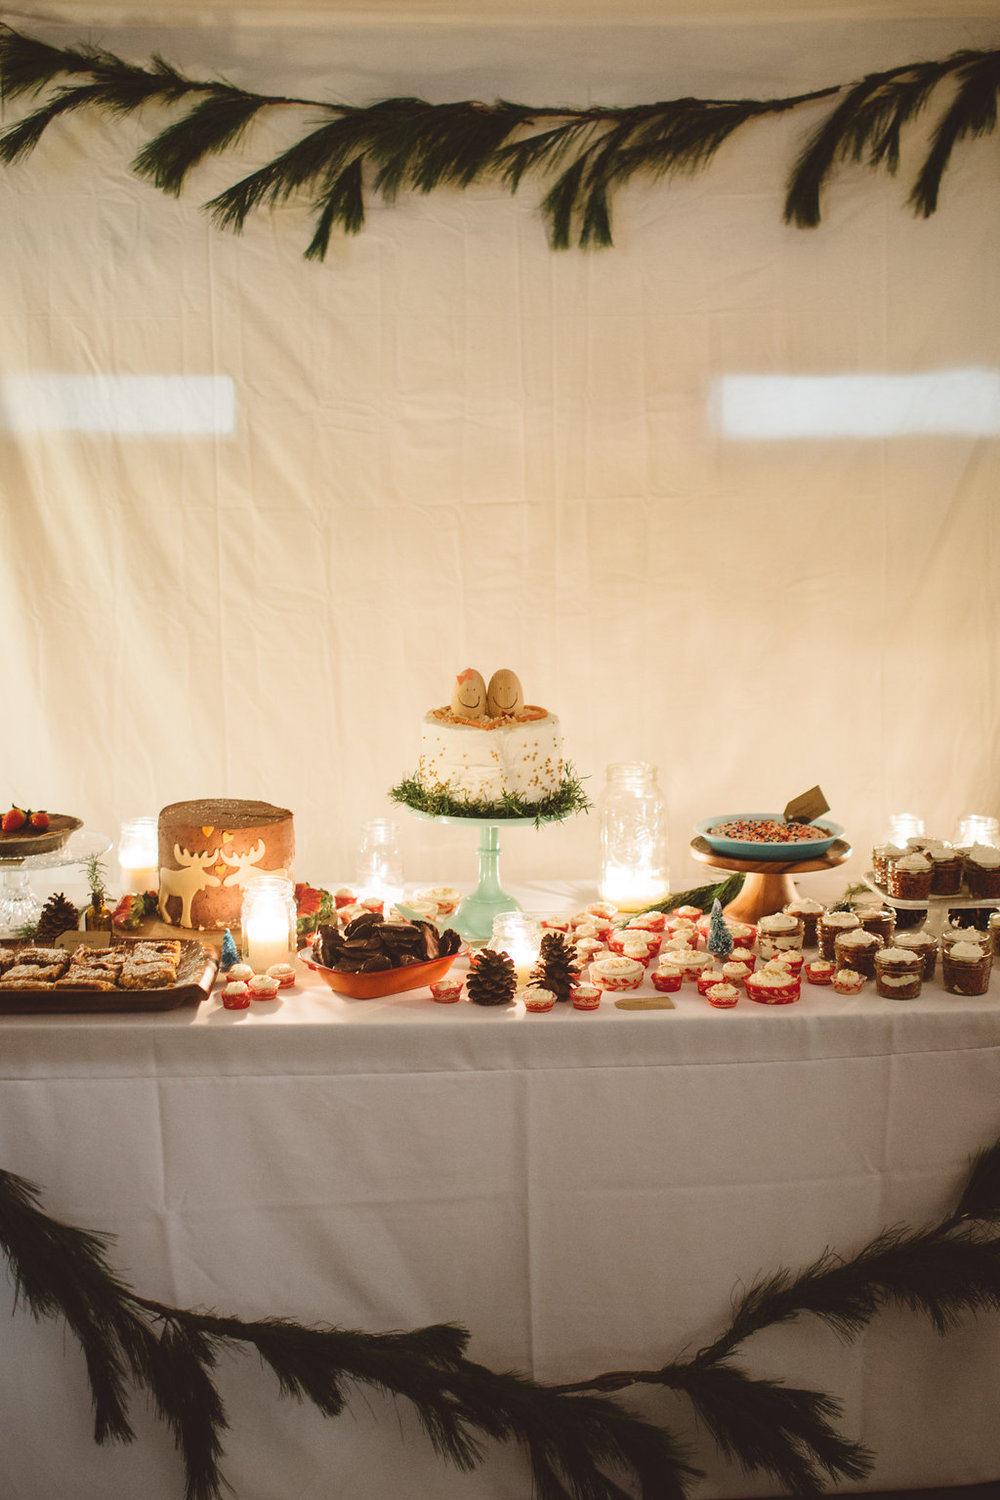 Our Wedding Desserts Tips For Making Your Own Wedding Desserts